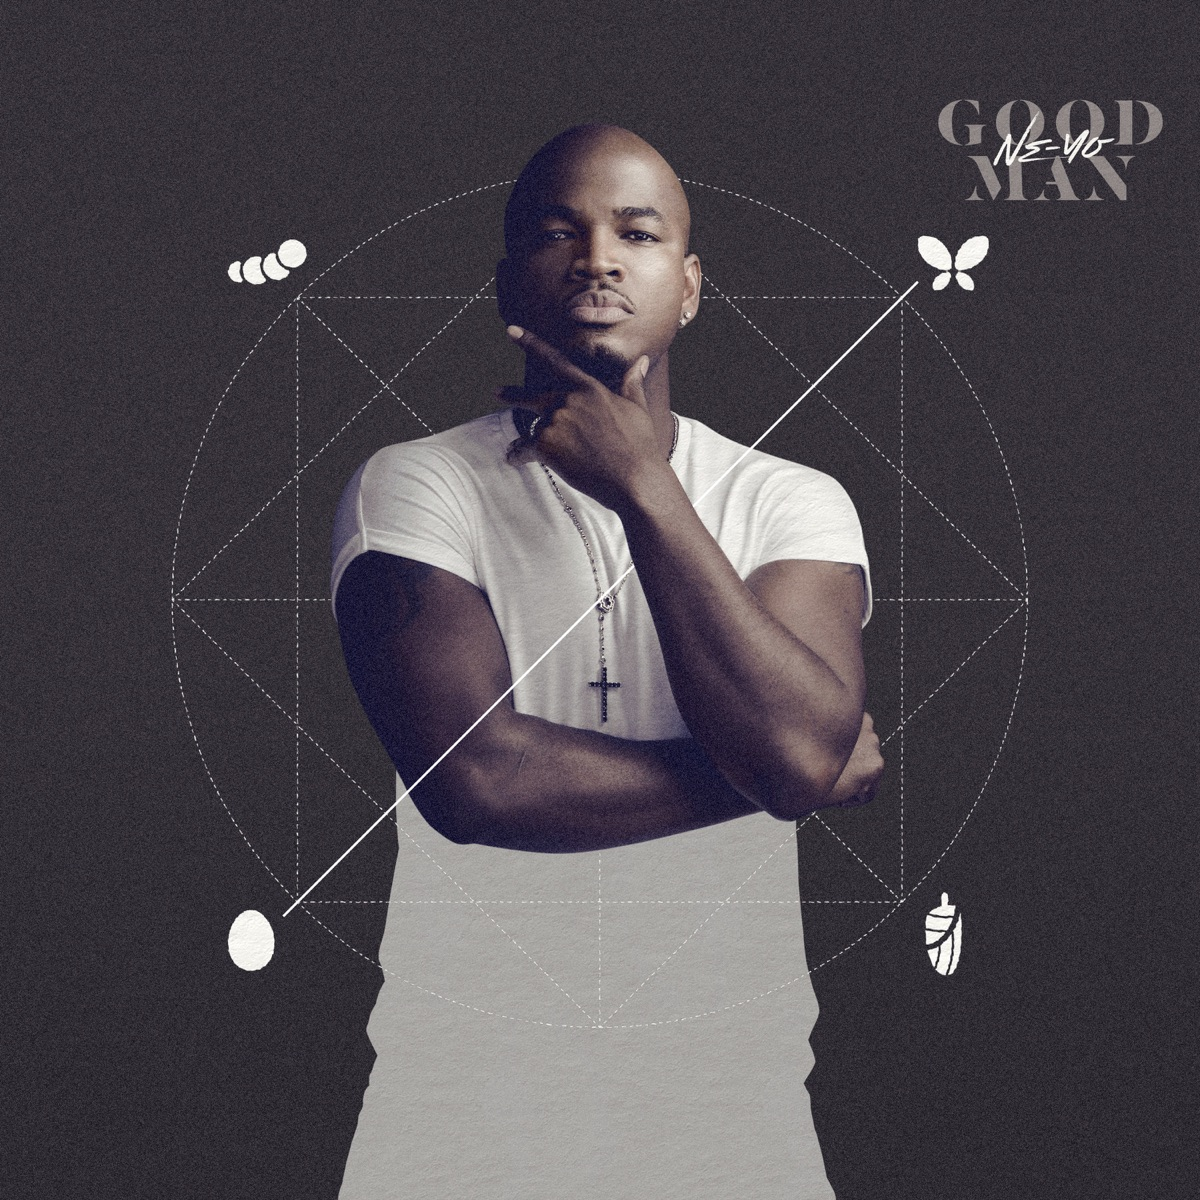 GOOD MAN Deluxe Ne-Yo CD cover